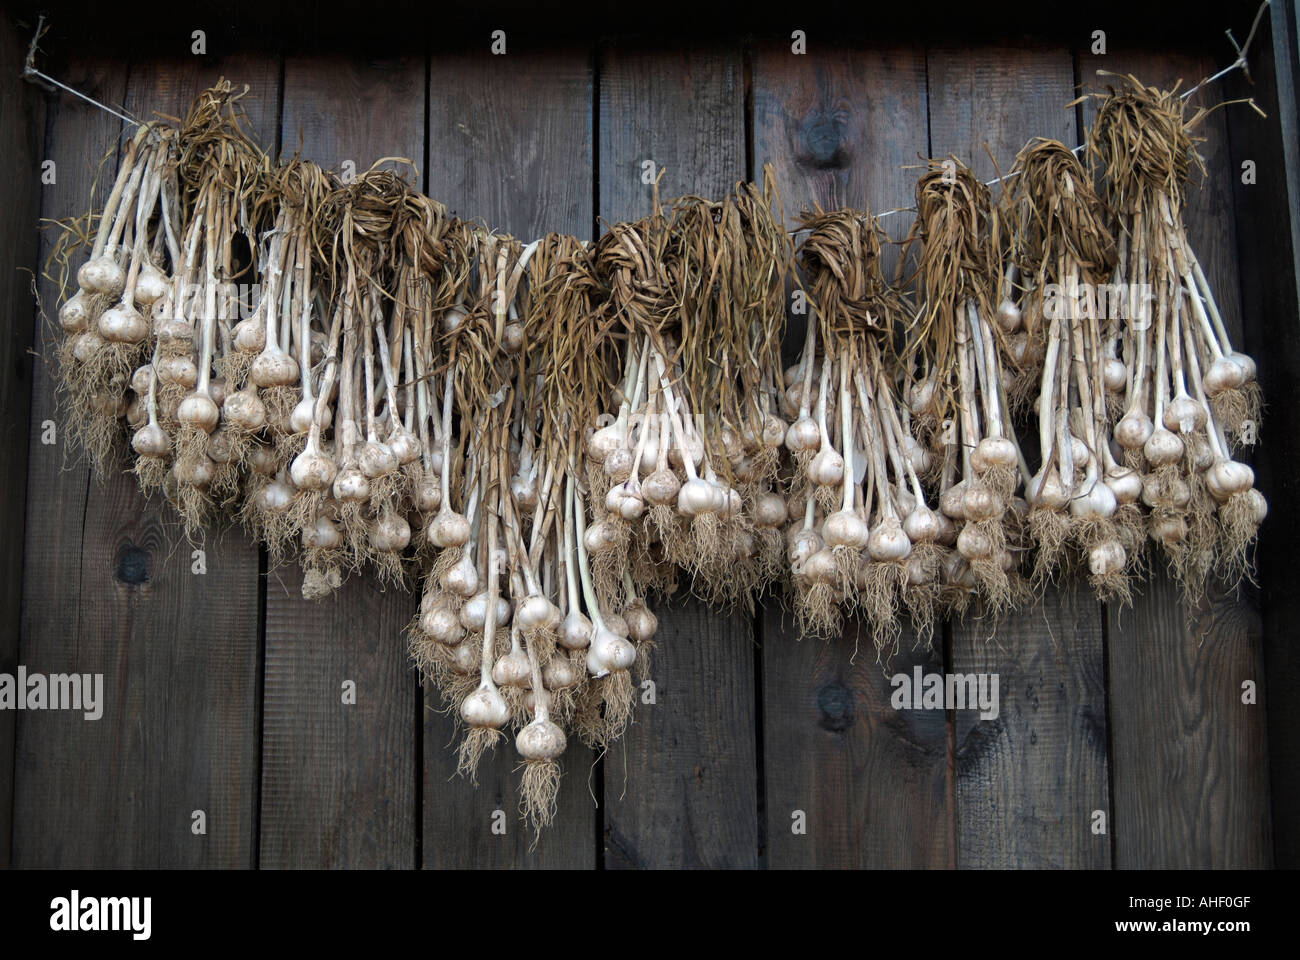 Freshly Dug Garlic Bulbs Hung Up to Dry In a Doorway of a Village House Stock Photo